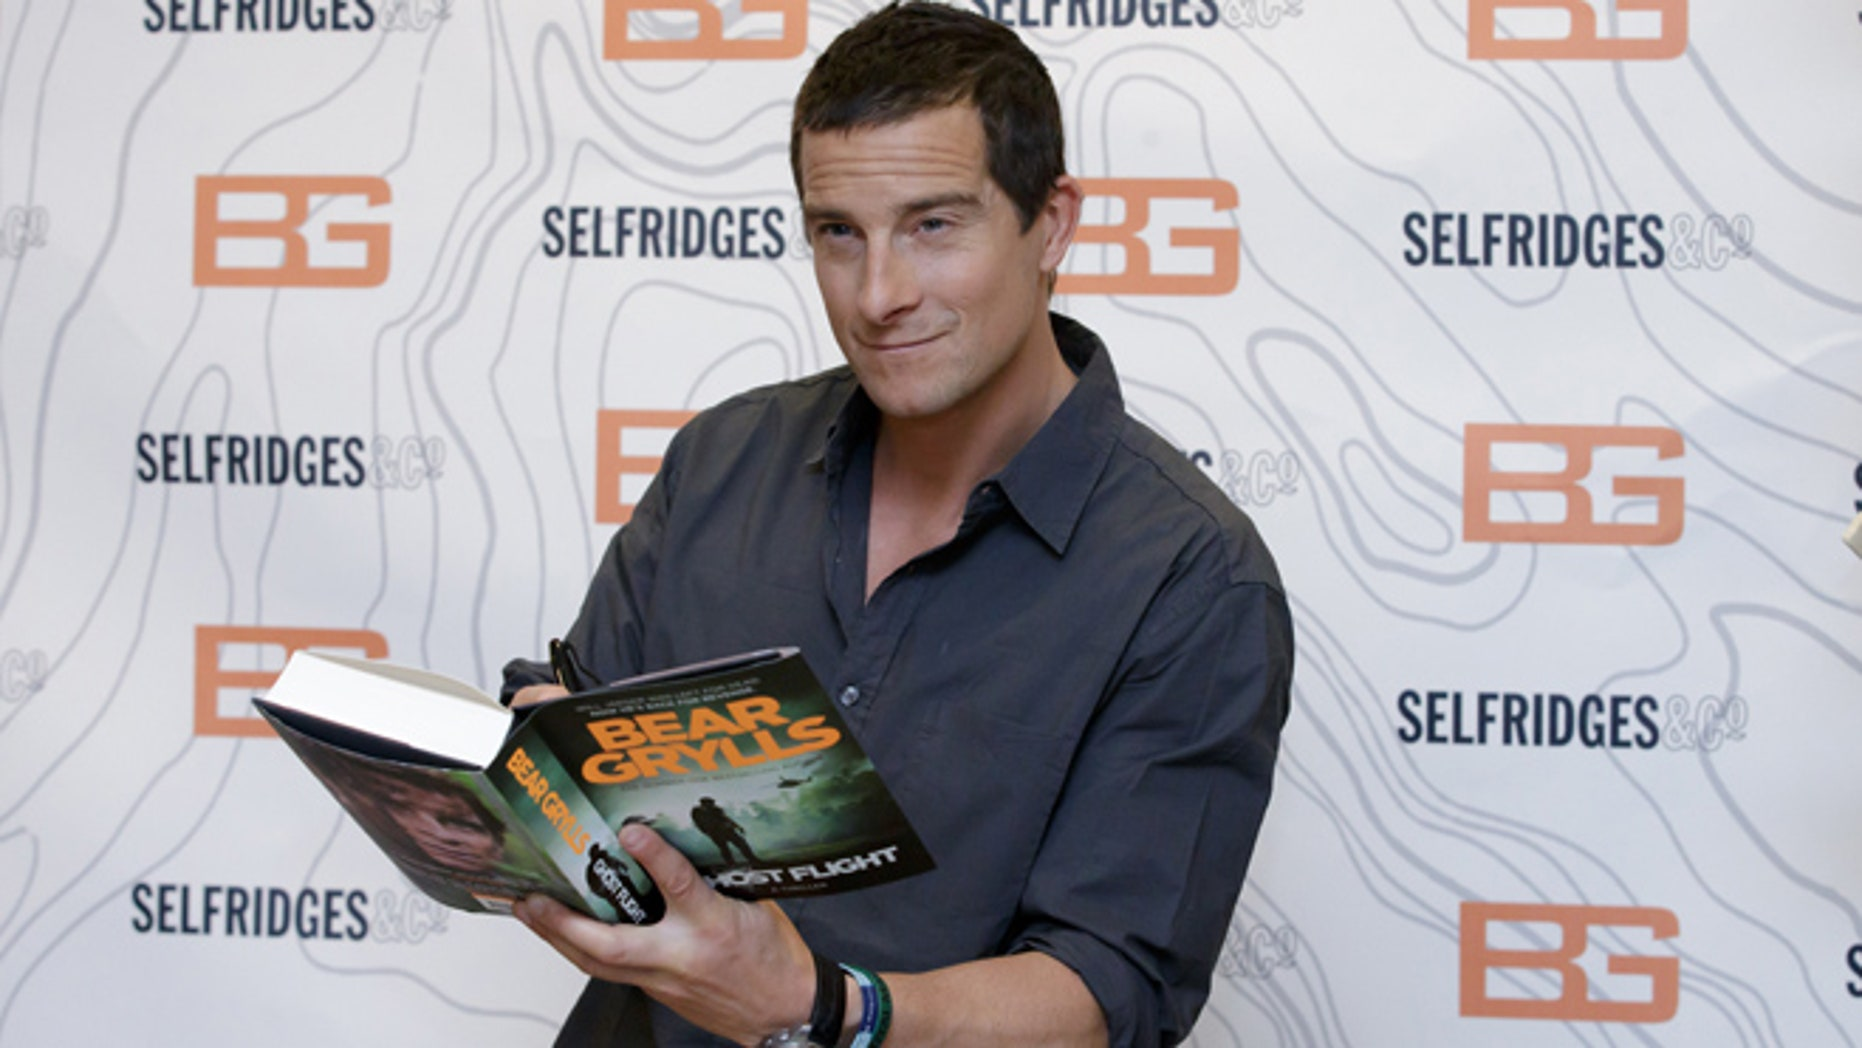 June 4, 2015: British writer and TV presenter Bear Grylls poses for photographers before signing copies of his new book at Selfridges in London.